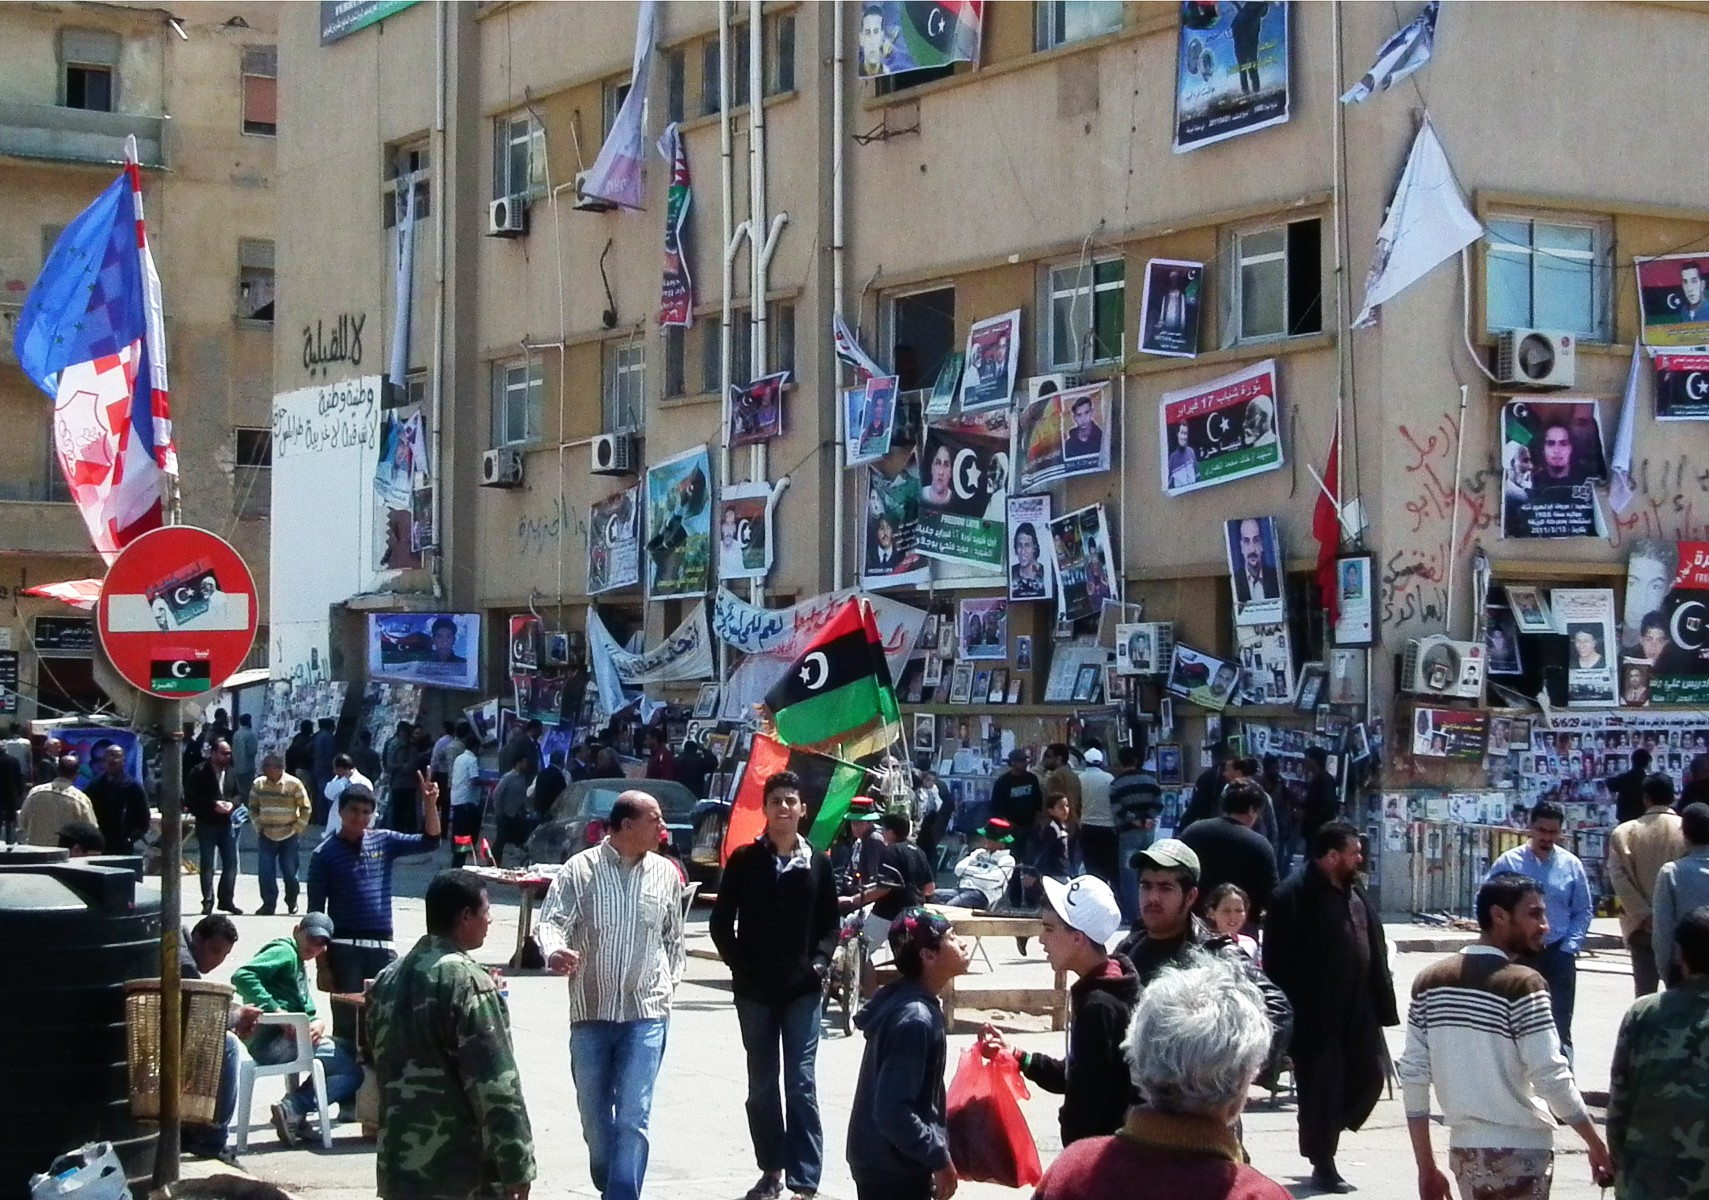 Court square in Benghazi